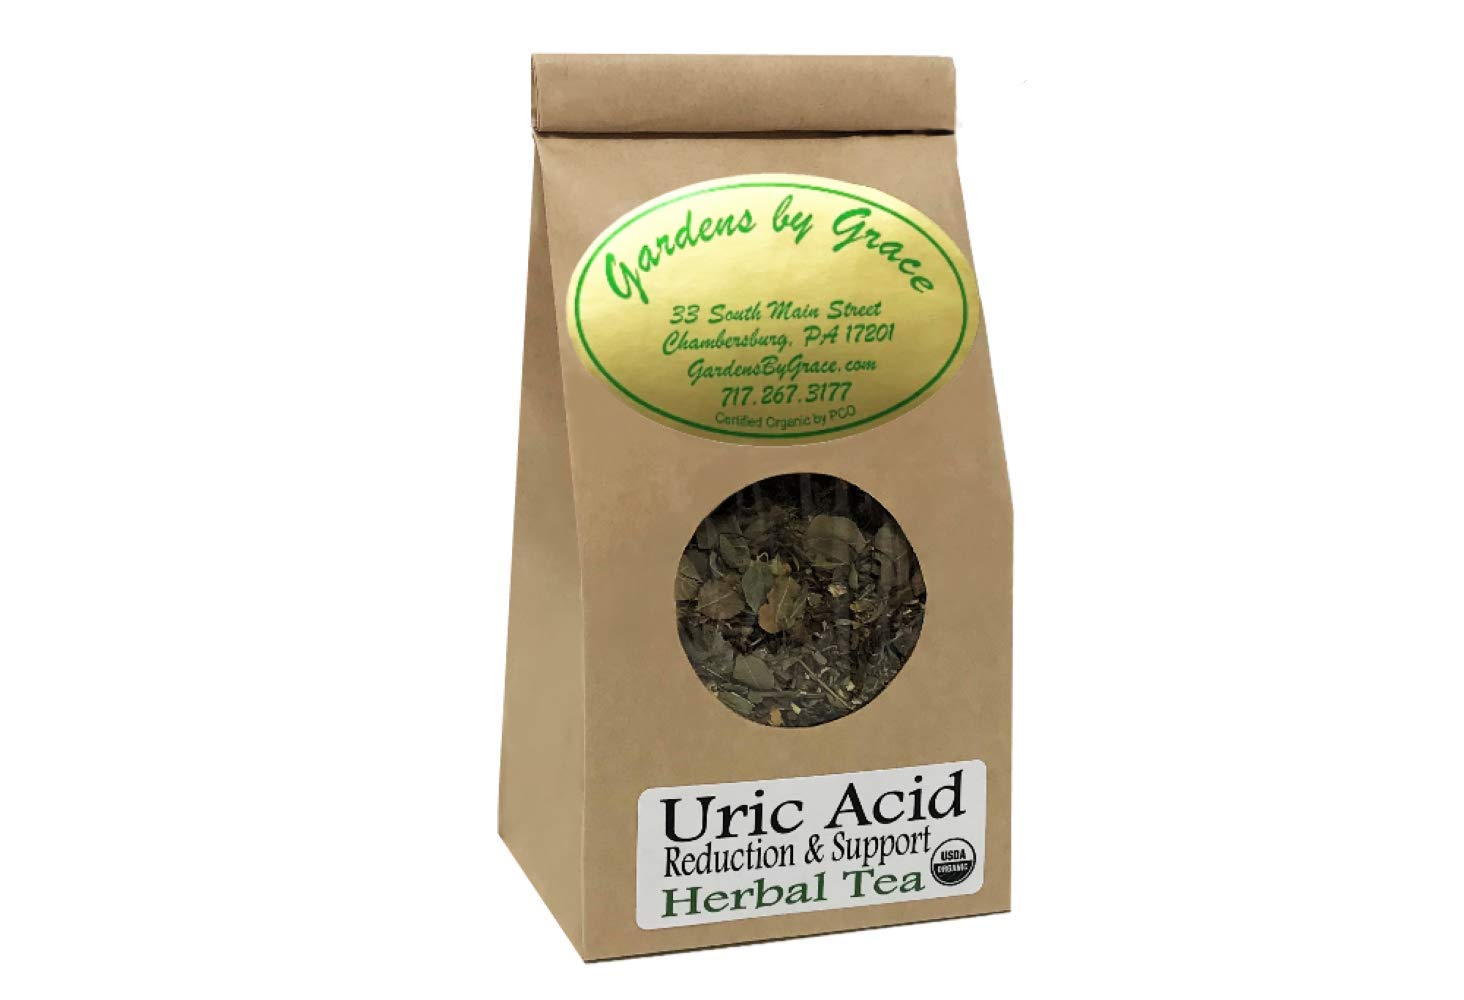 Uric Acid Reducer | Supports Kidney Health | Reduces Flare-ups, Chronic Pain, Swelling | Potent Antioxidants, Fast Relief | Organic, Loose Leaf 2 oz